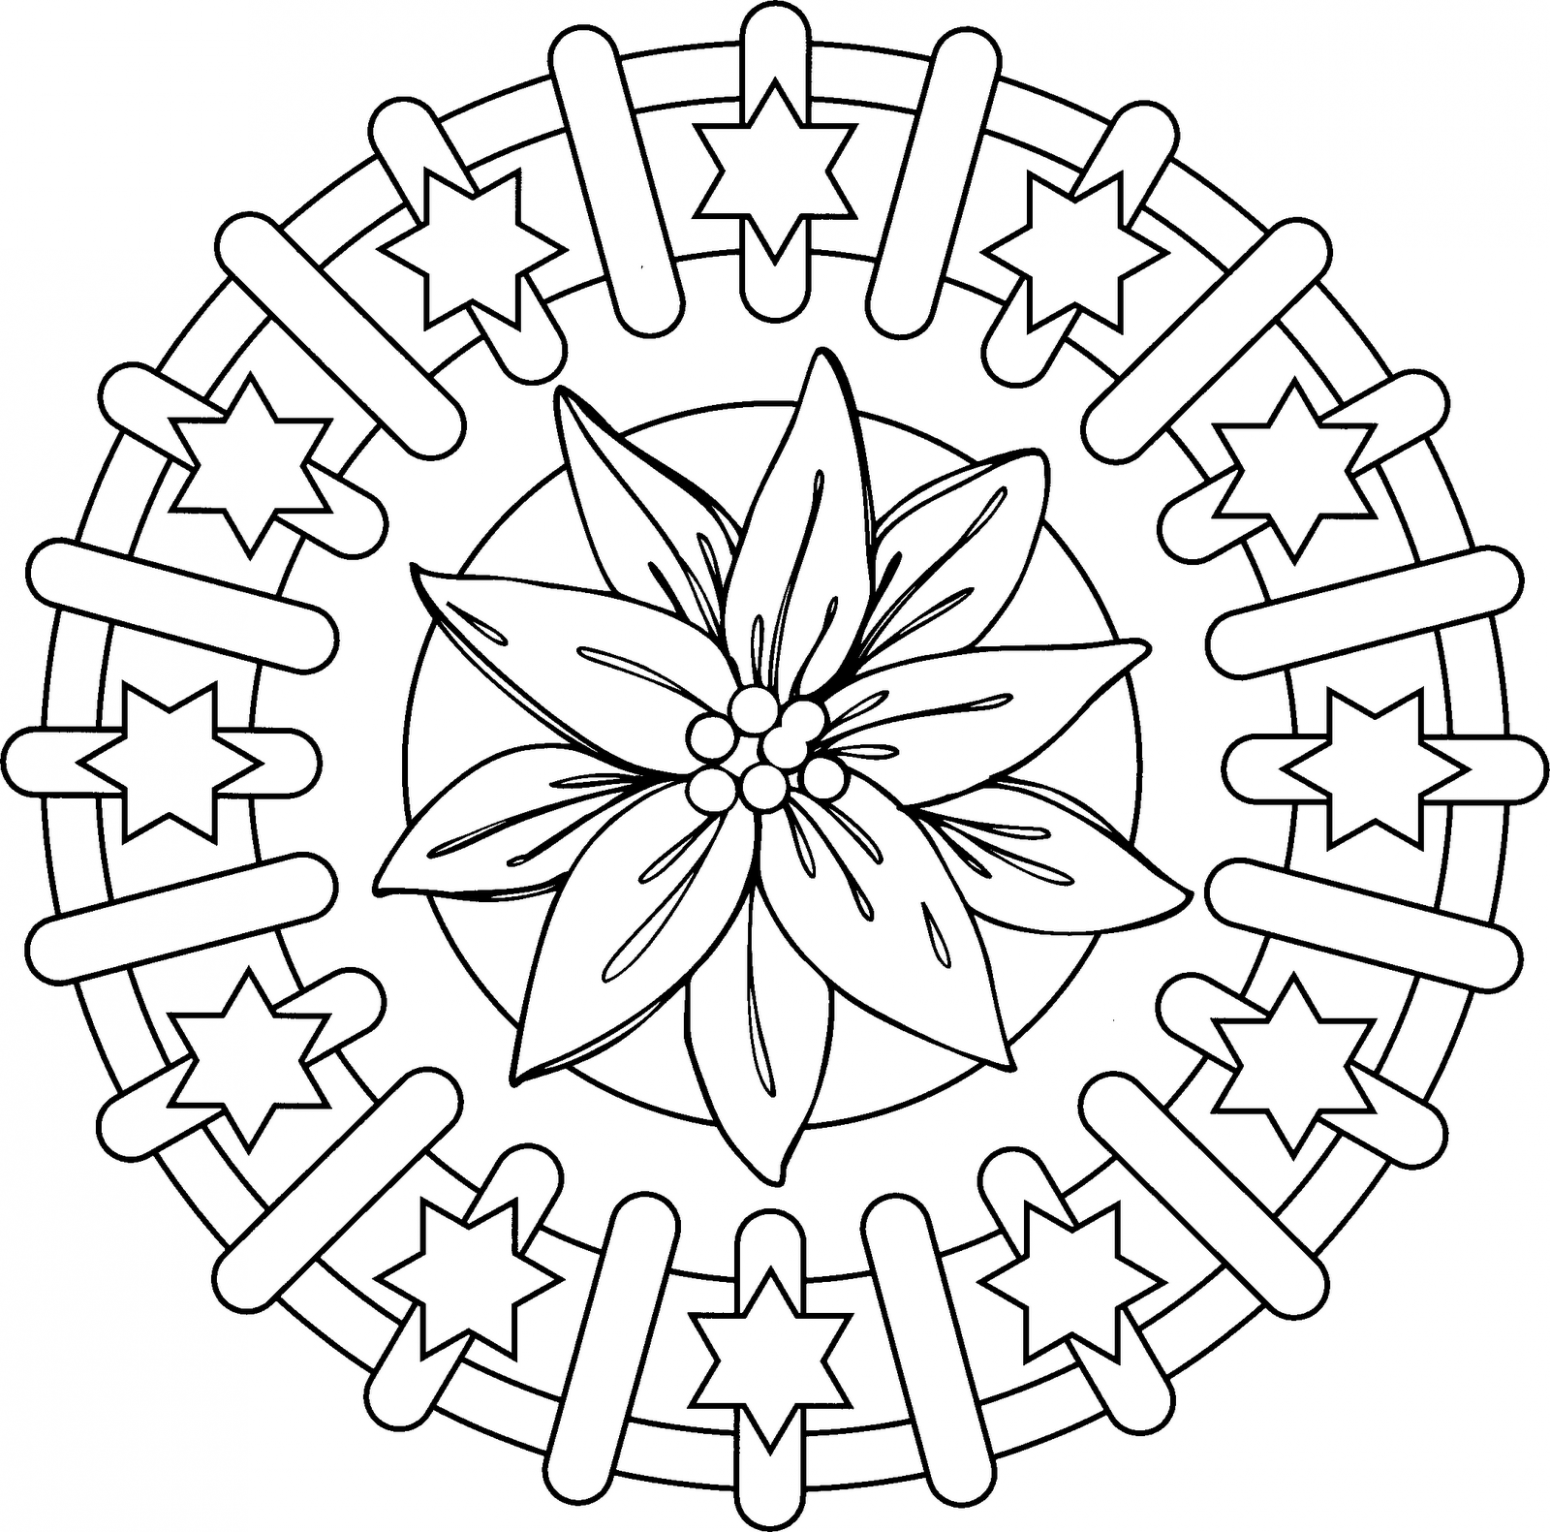 Simple Mandala Coloring Pages Latest Easter Eggs Mandala Coloring